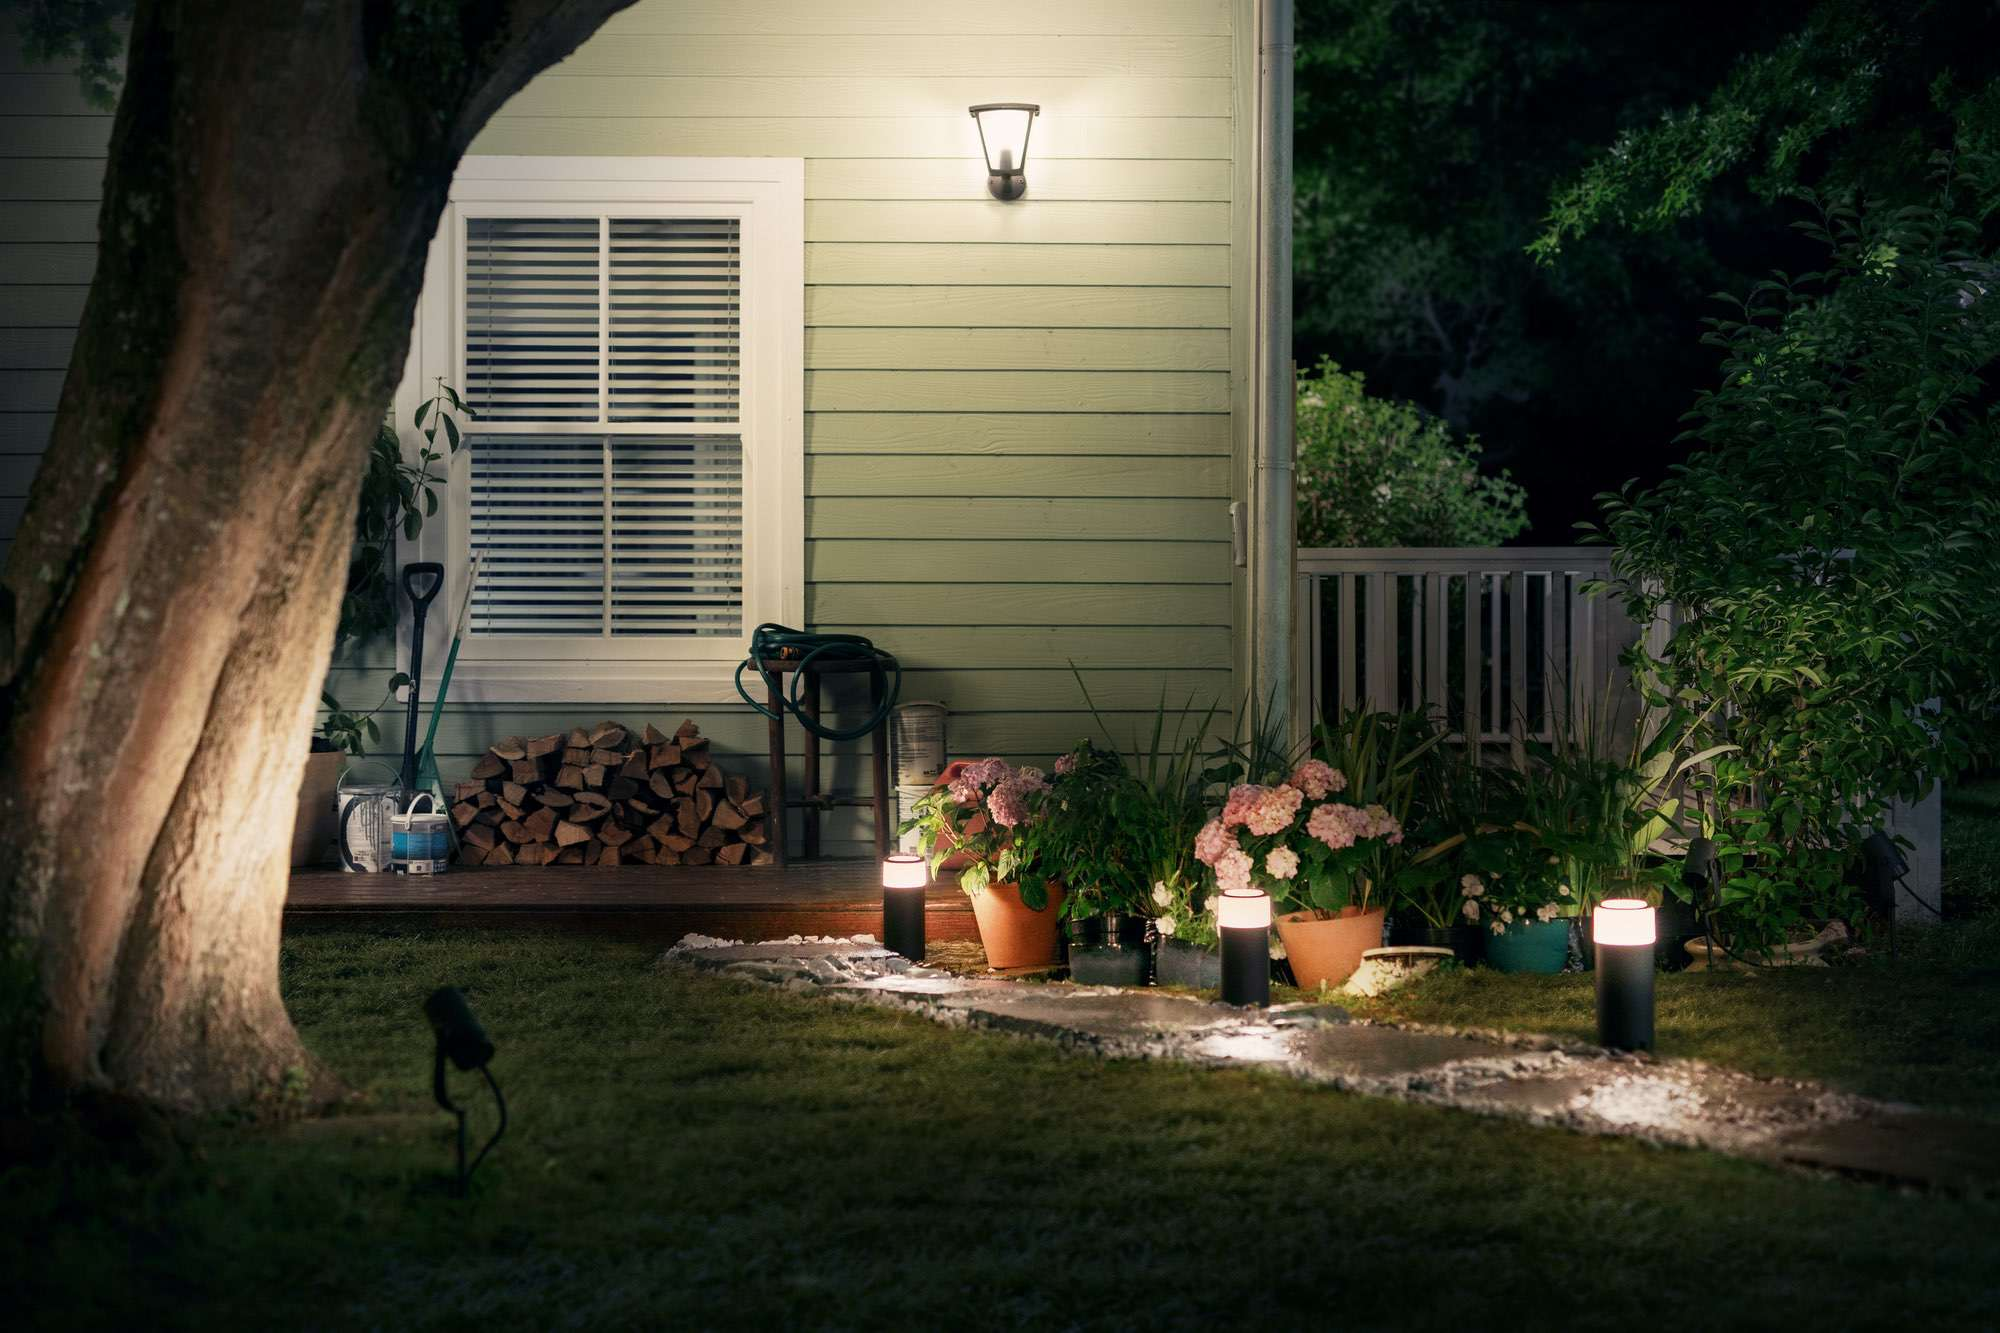 Outdoor Lampen von Philips Hue